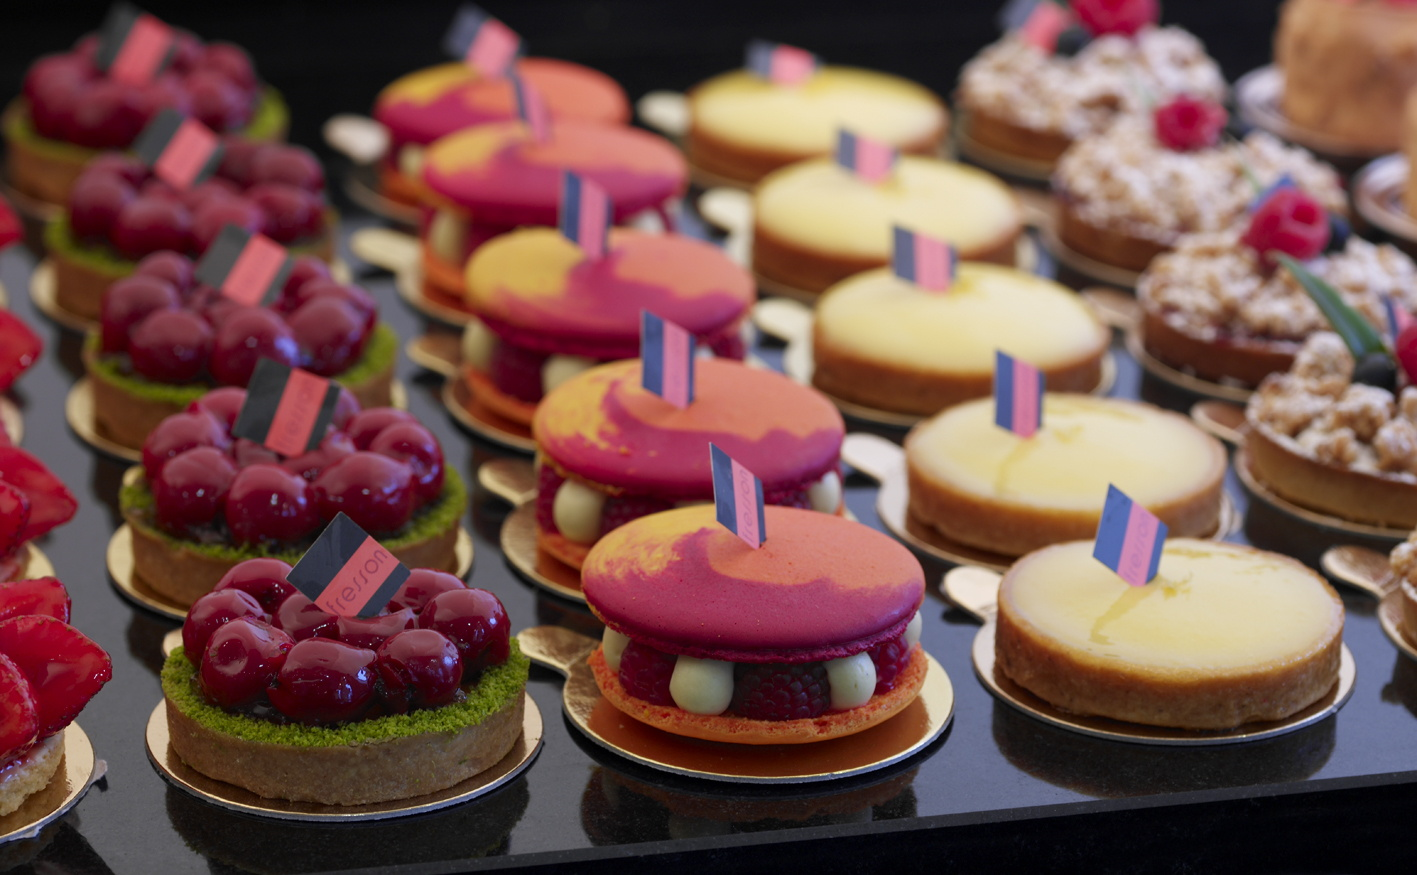 Nyc Taste 80 International Desserts At This One Night Event